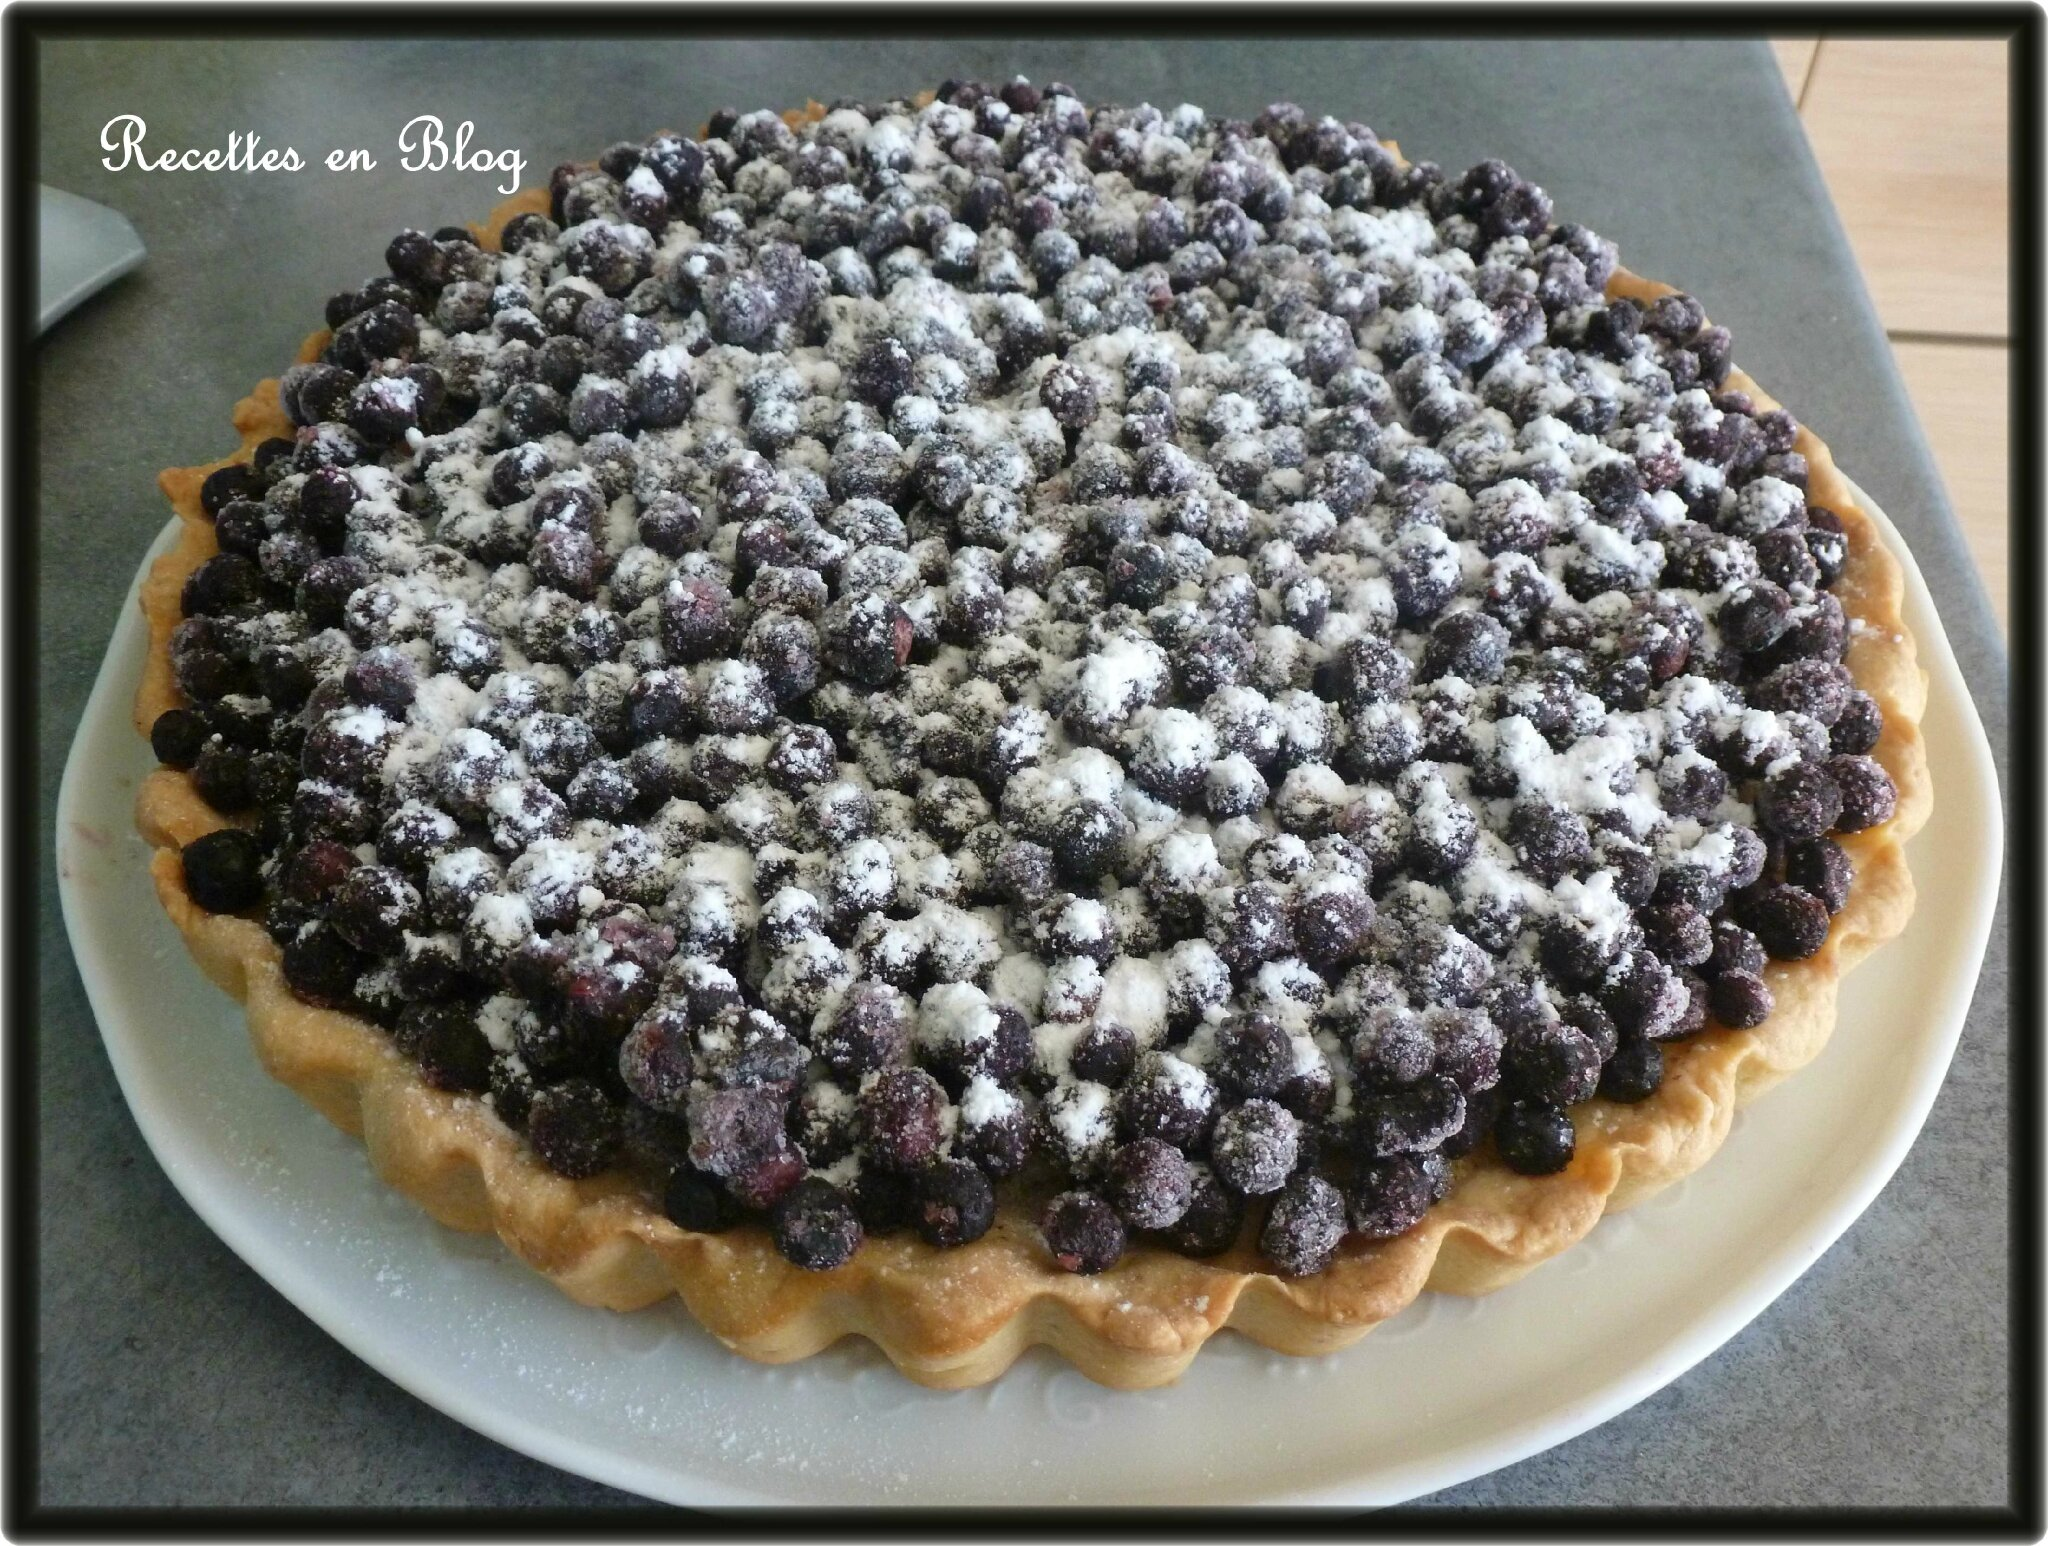 tarte aux myrtilles d 39 eric kayser recettes en blog. Black Bedroom Furniture Sets. Home Design Ideas